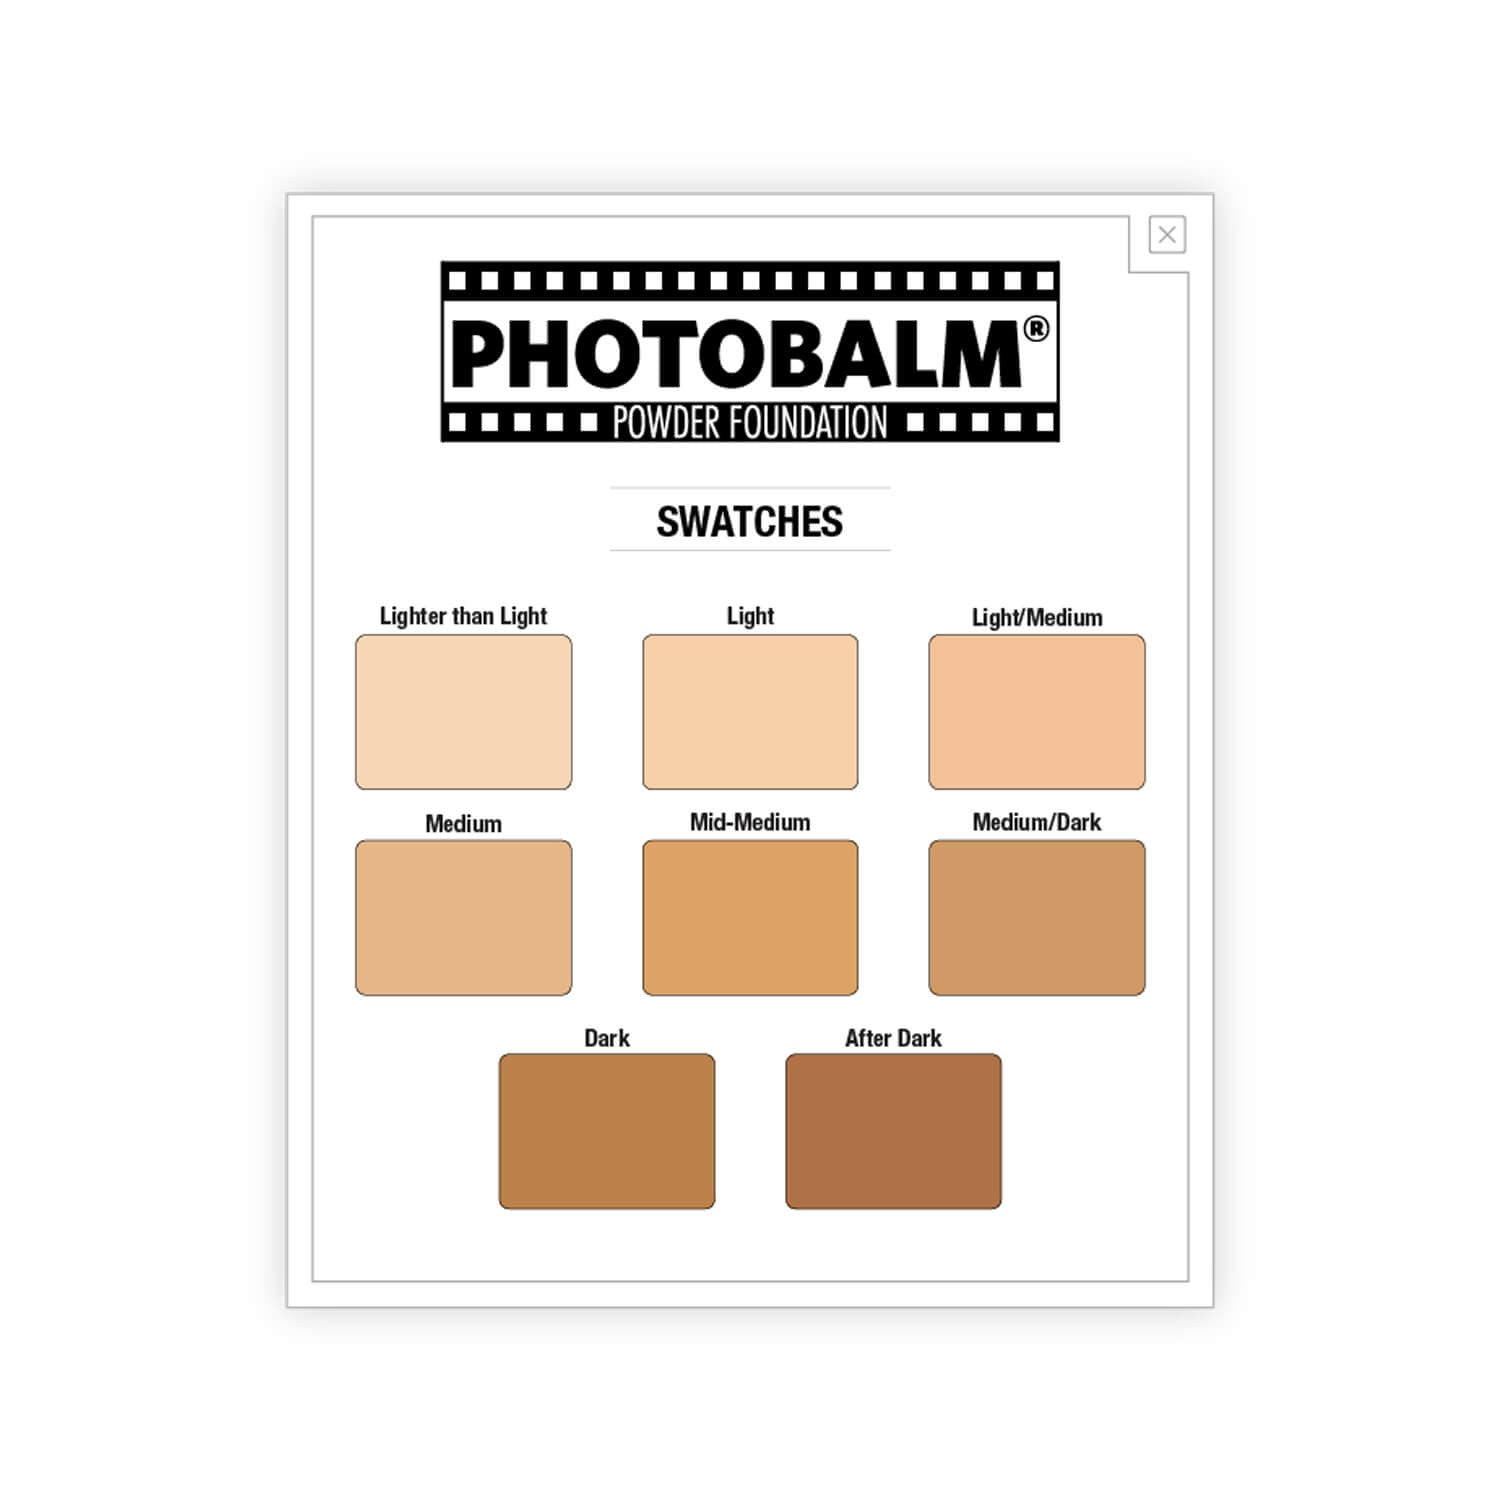 Thebalm Photobalm Powder Foundation Myqtcomau